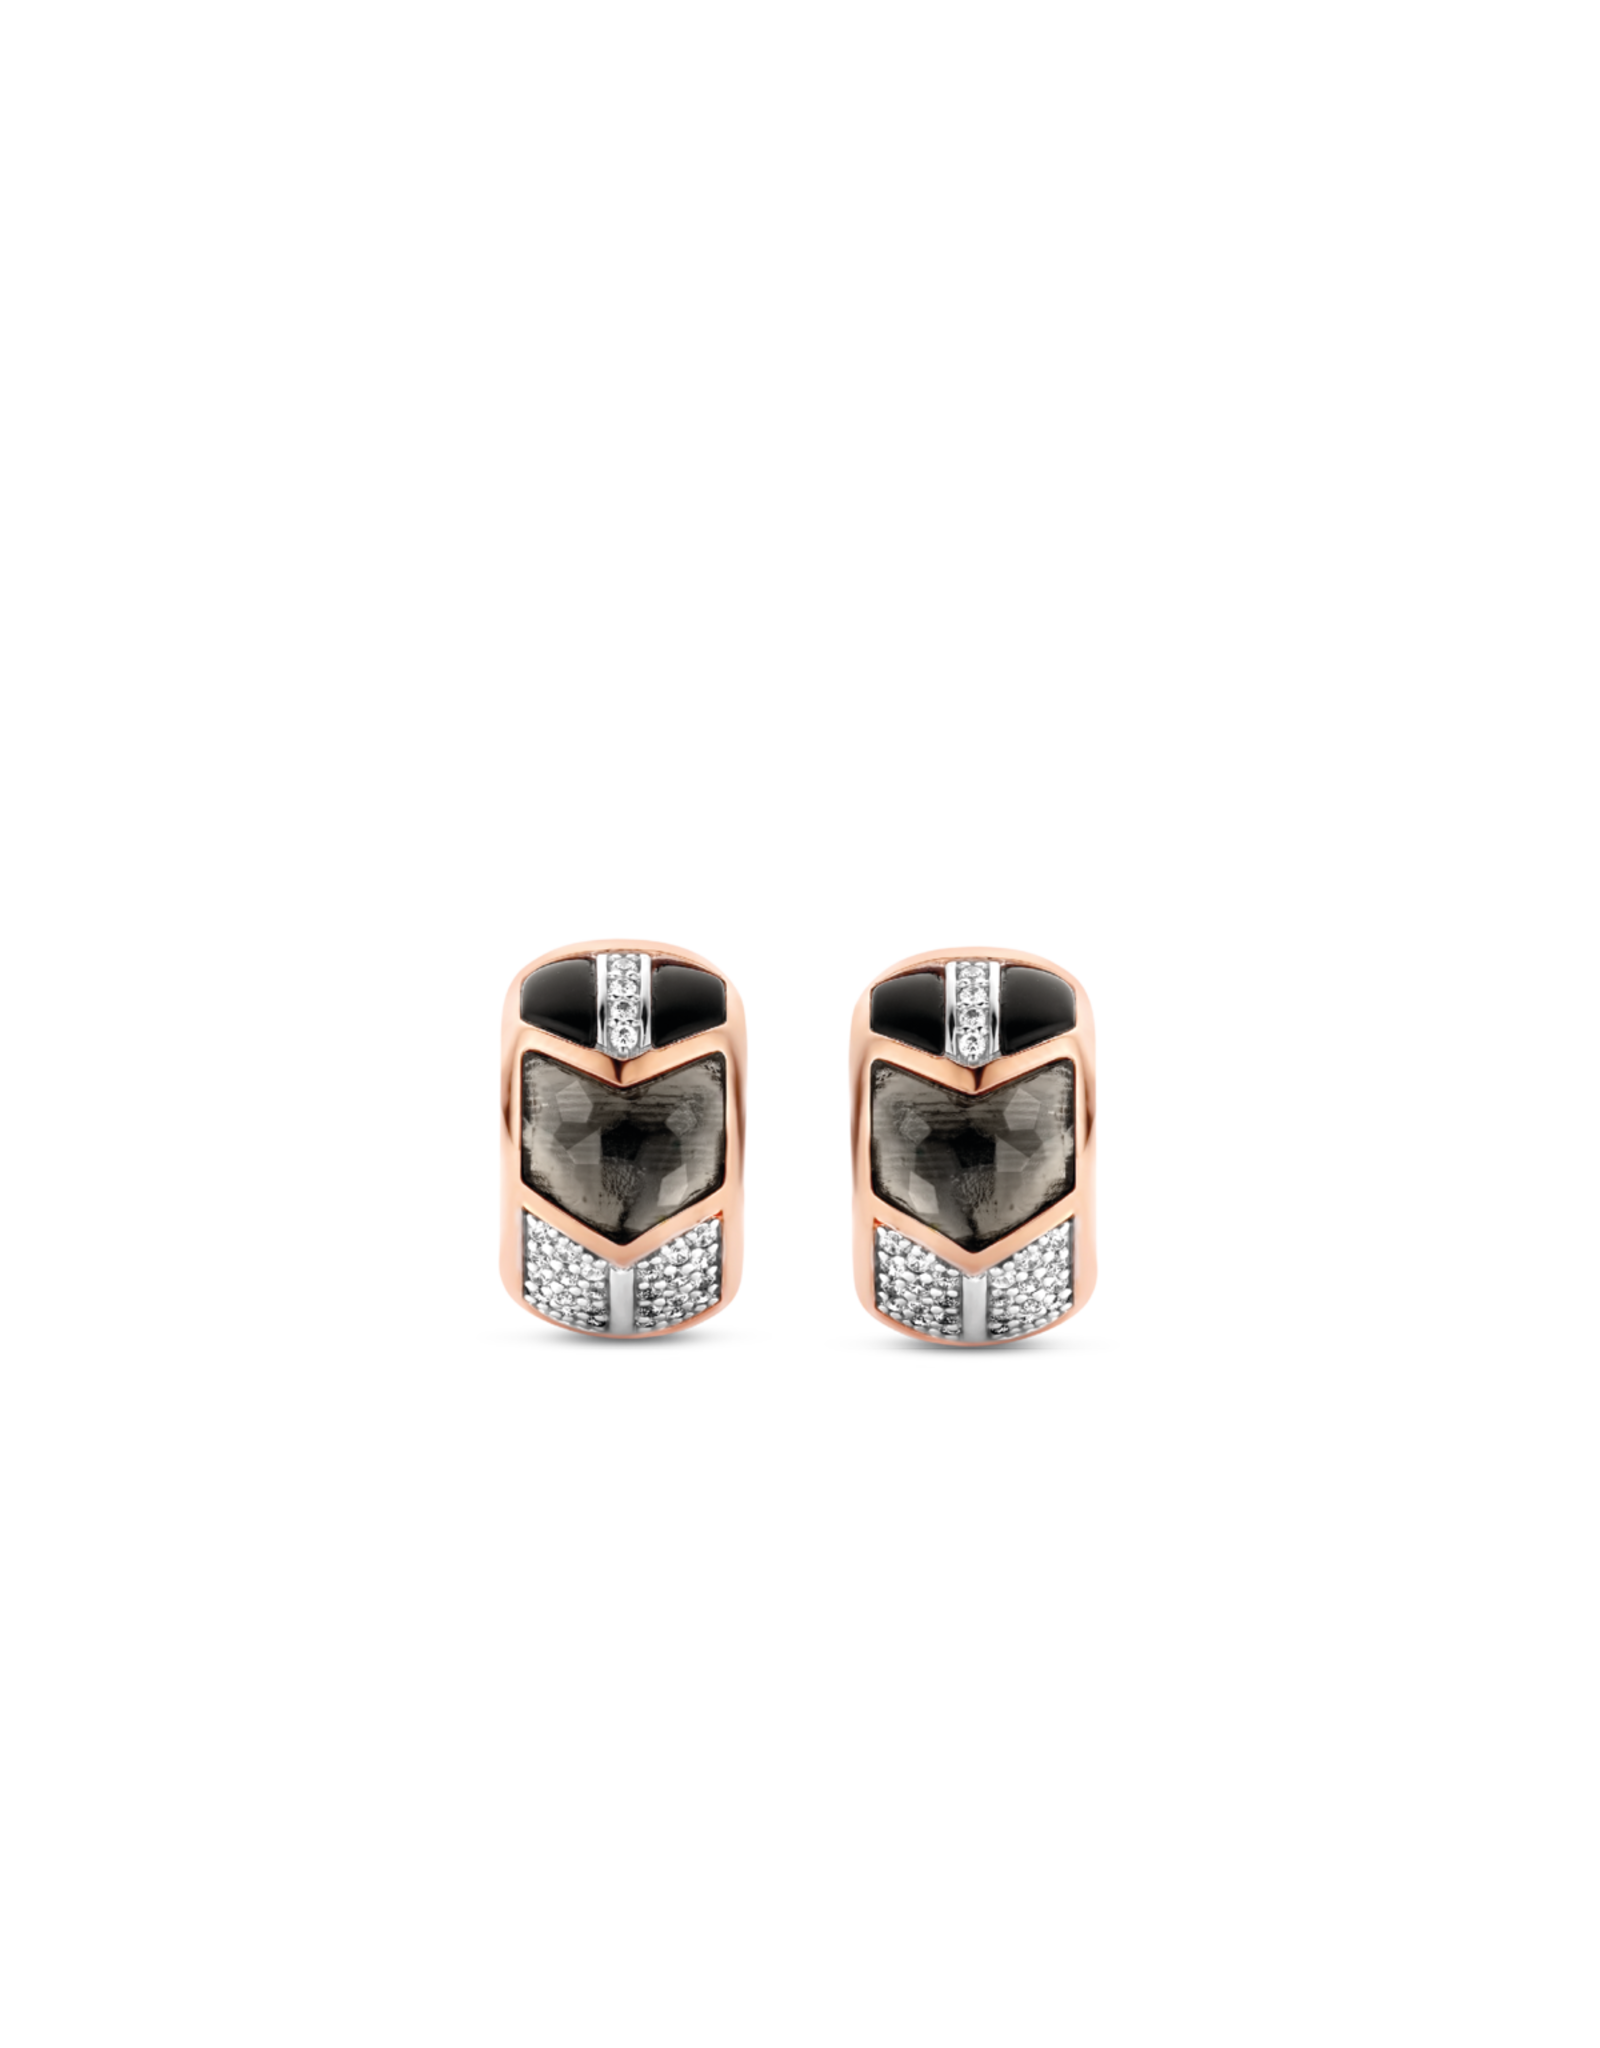 Art Deco Translucent Gray and Black Huggie Earrings- 7828GB